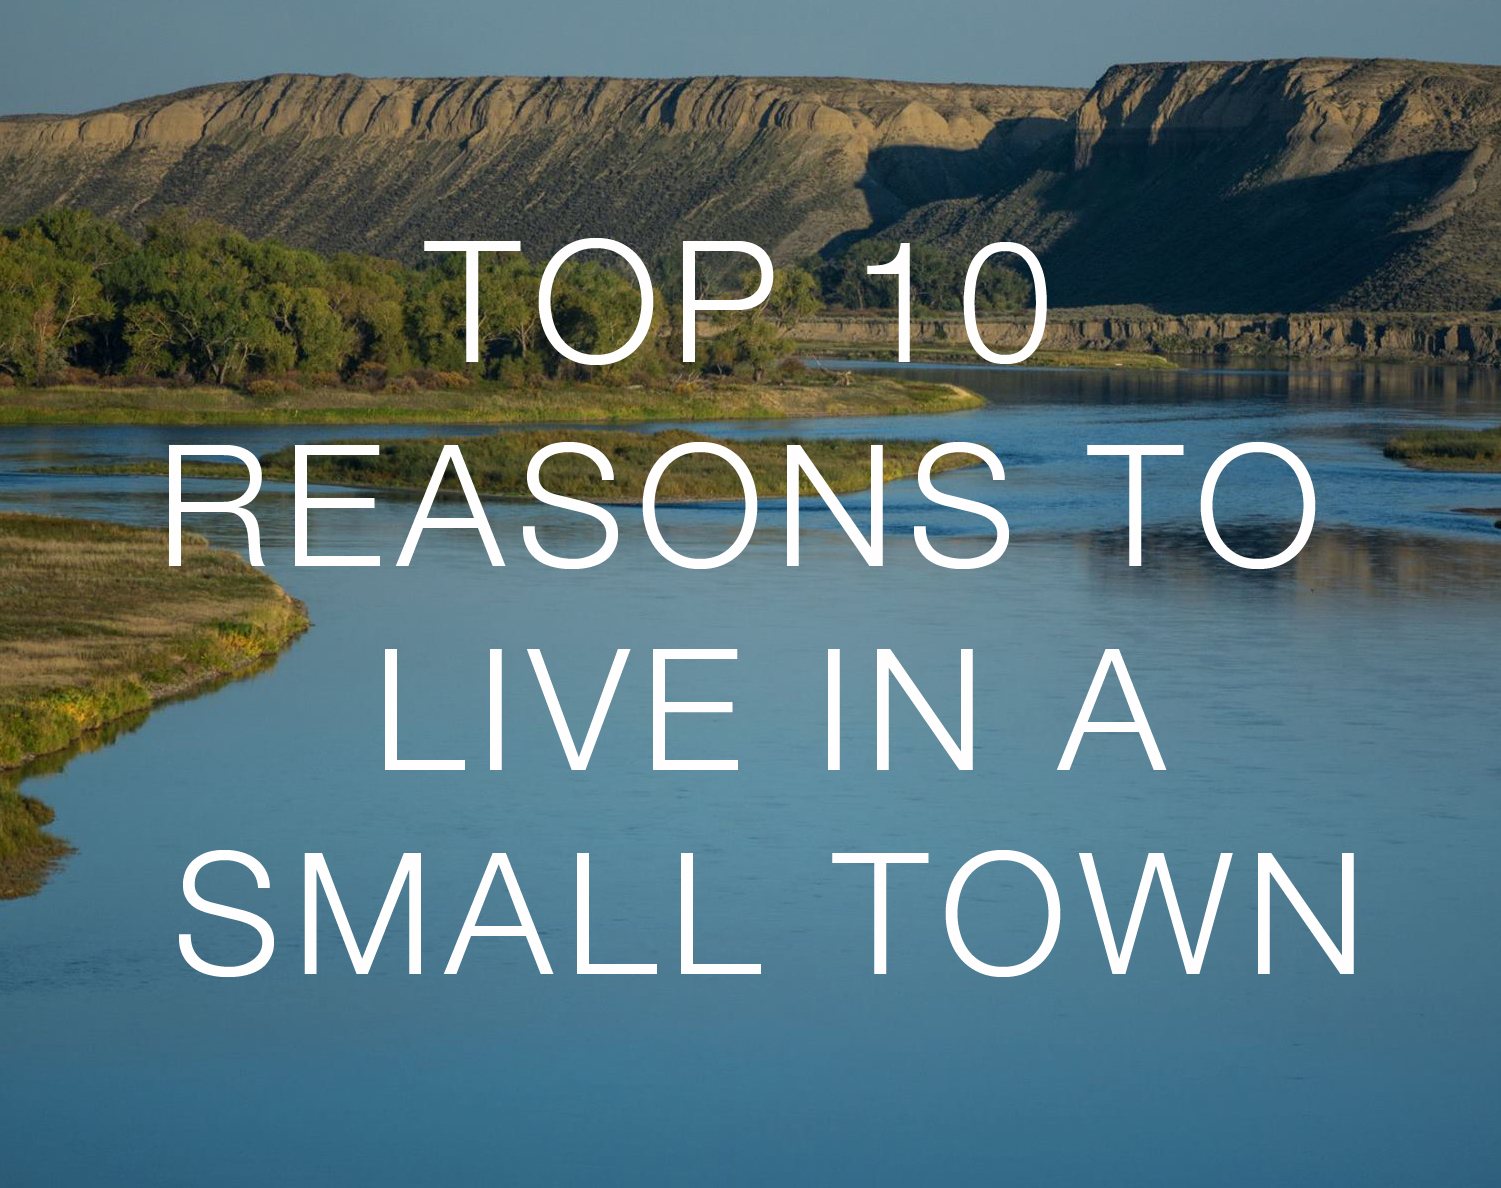 TOP 10 REASONS TO LIVE IN A SMALL TOWN